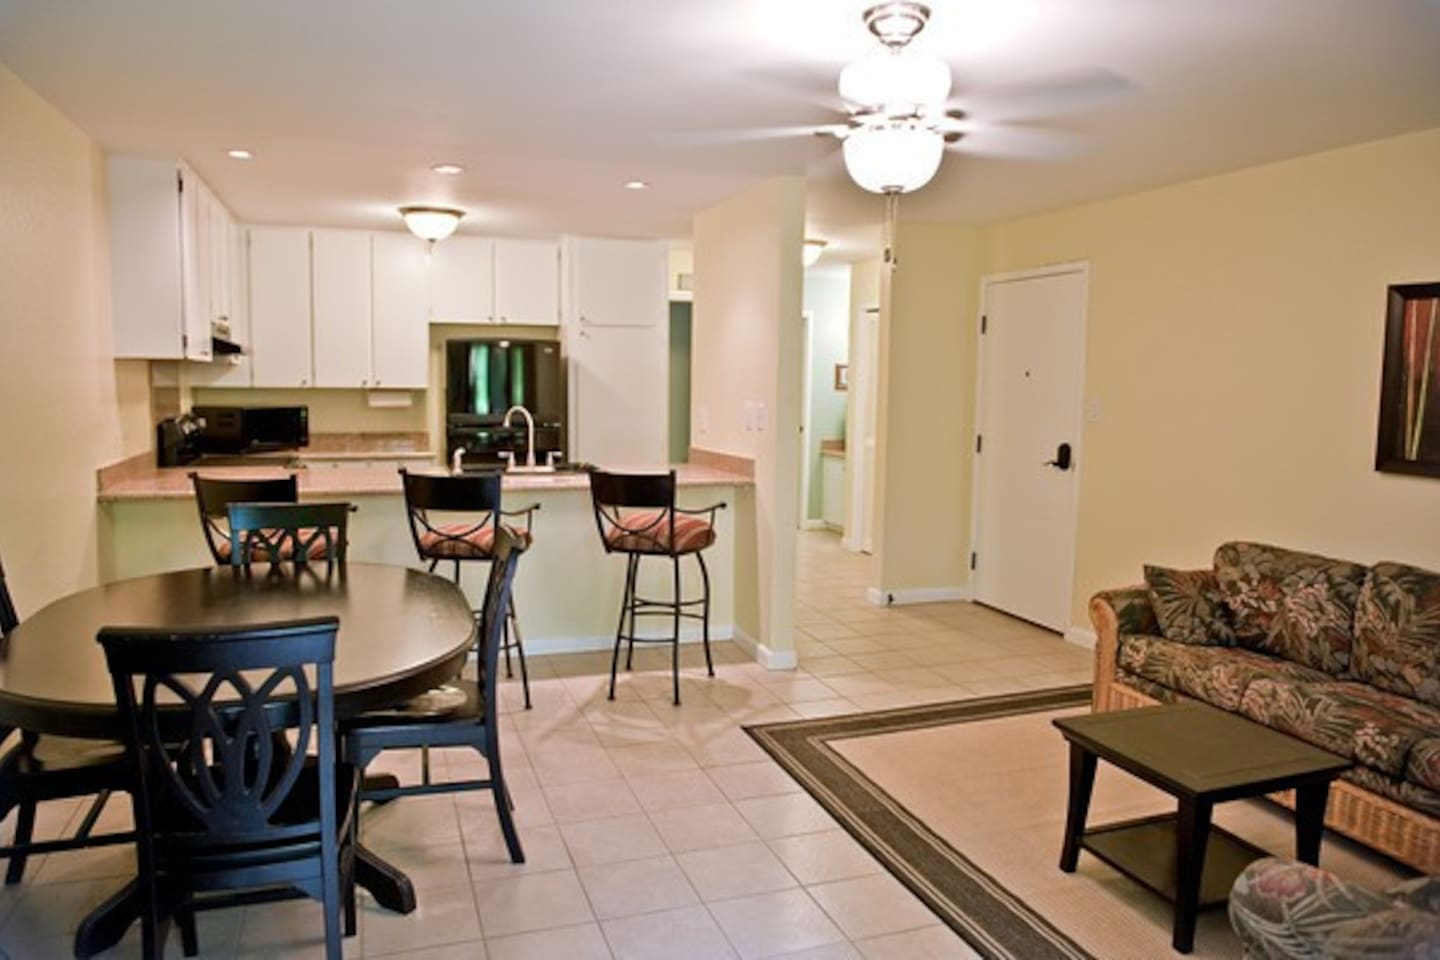 Our roomy condo perfect for a romantic getaway, or a family vacation.